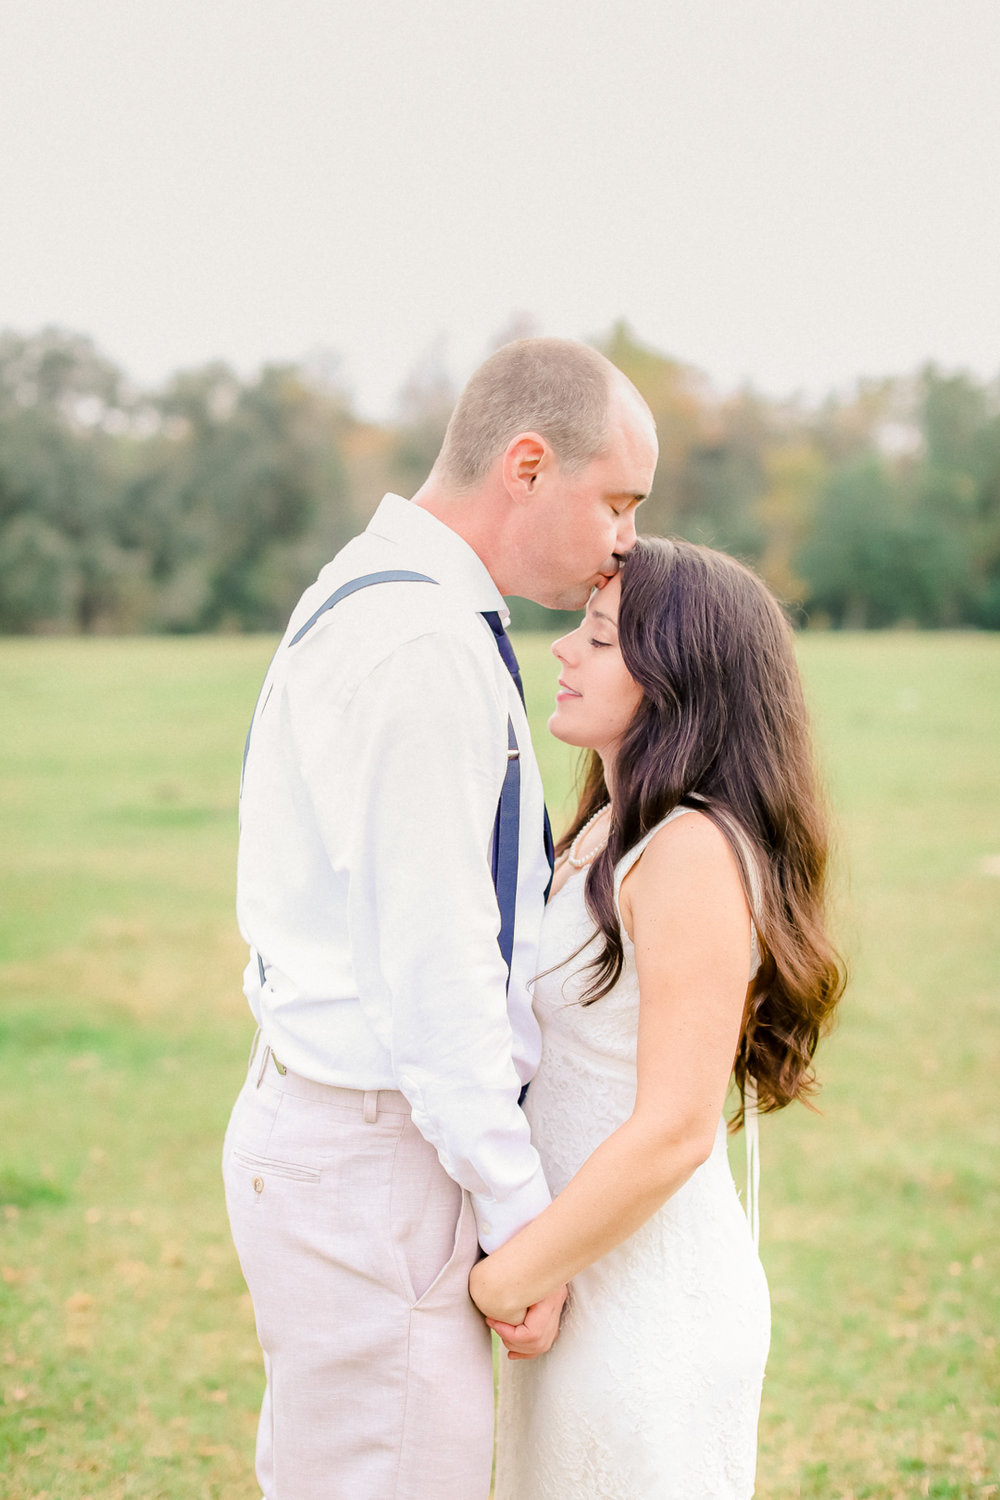 williams_family_newlywed-151.jpg